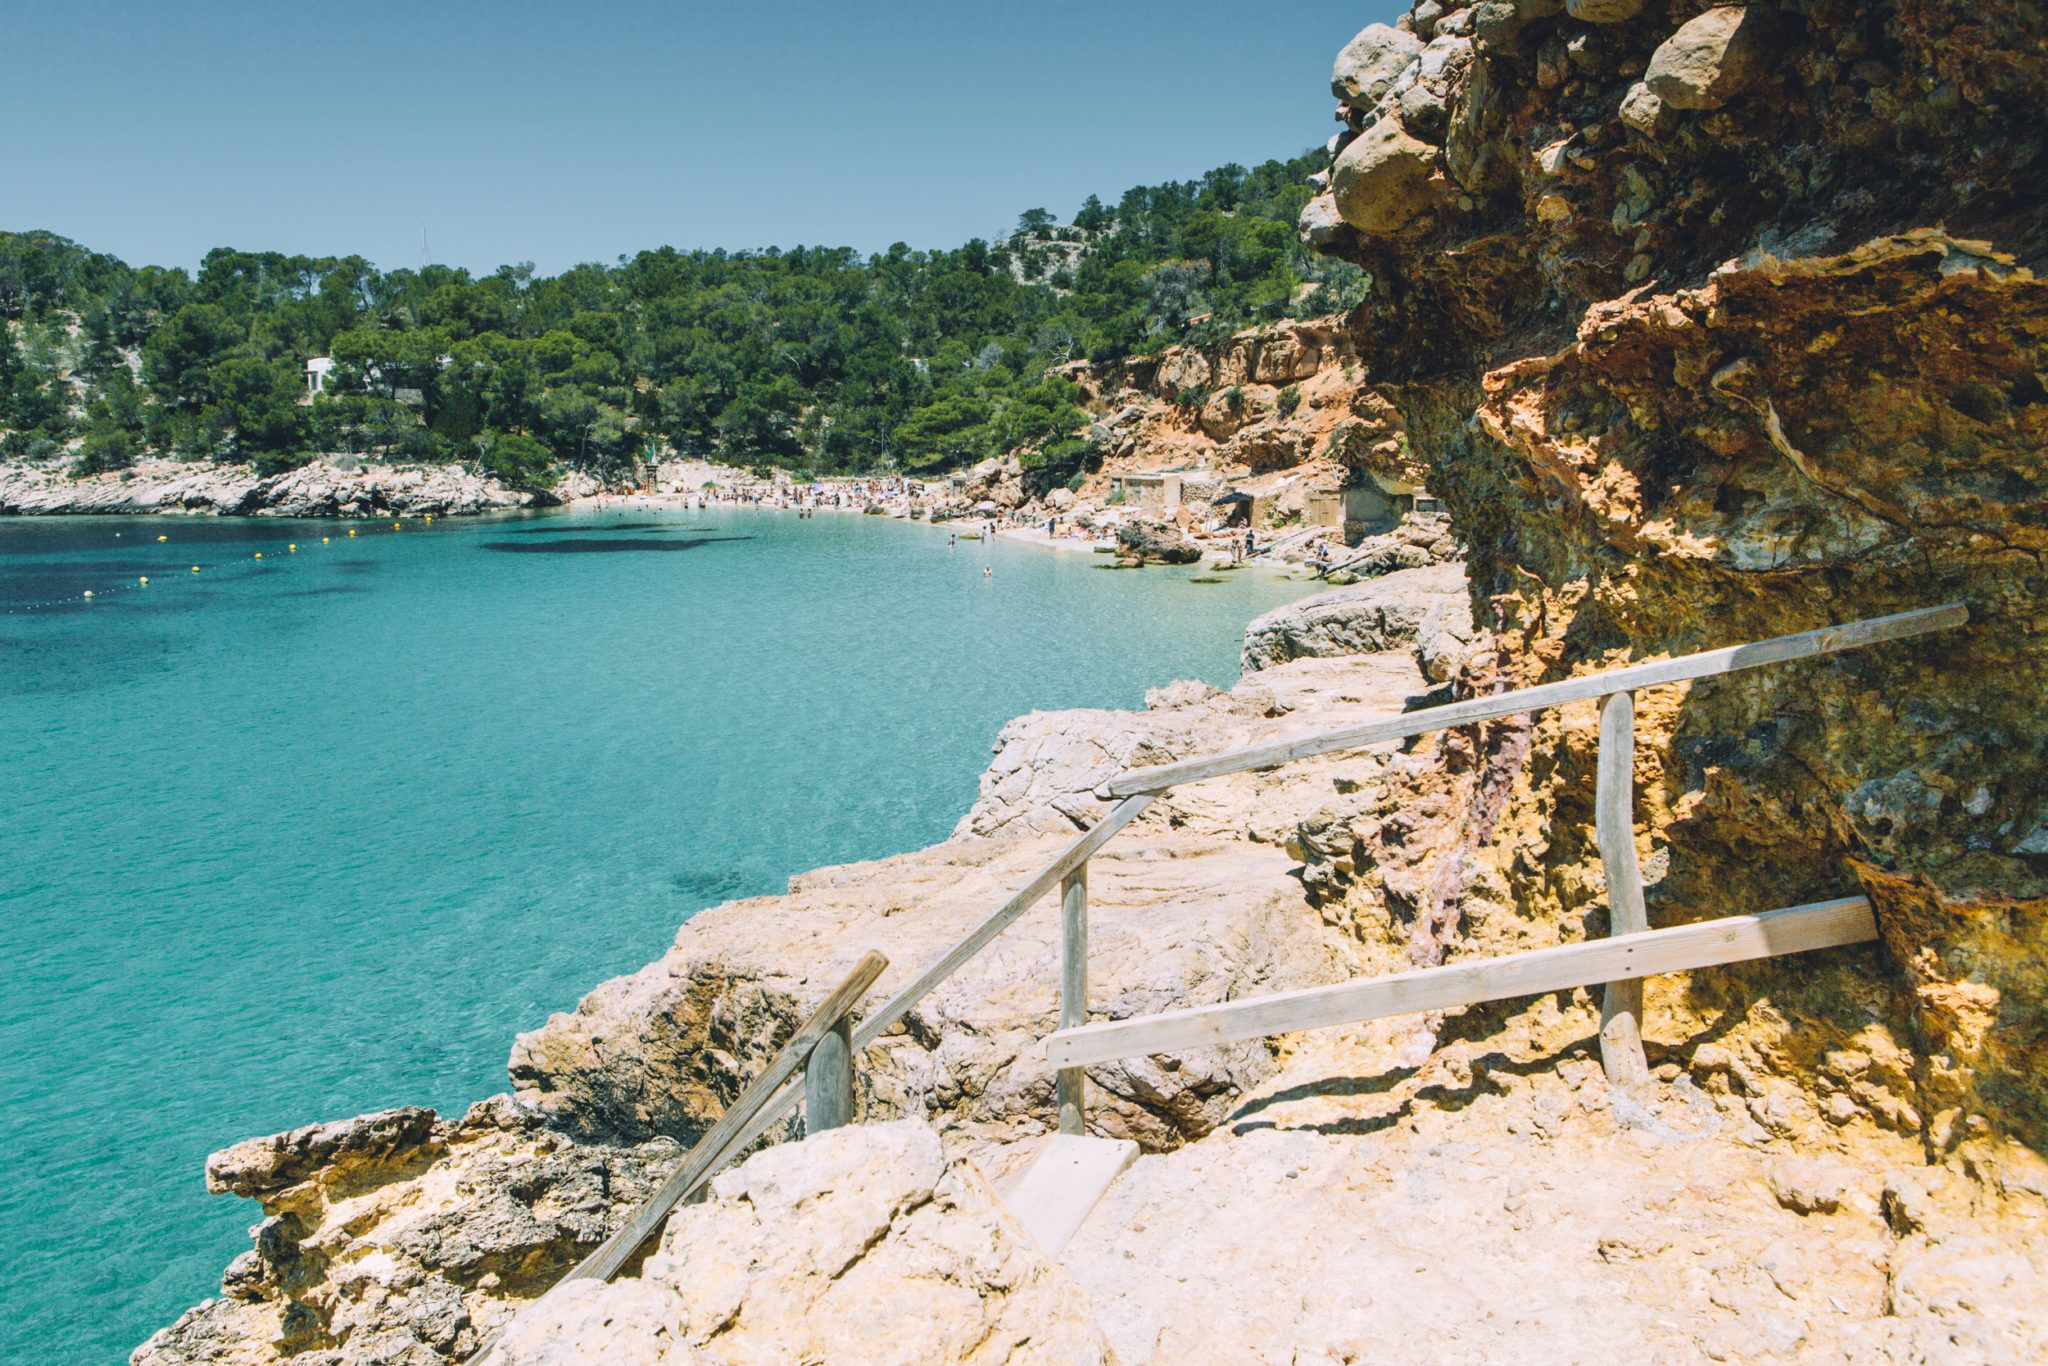 Wanderlust: Out of the ordinary things to do in Ibiza